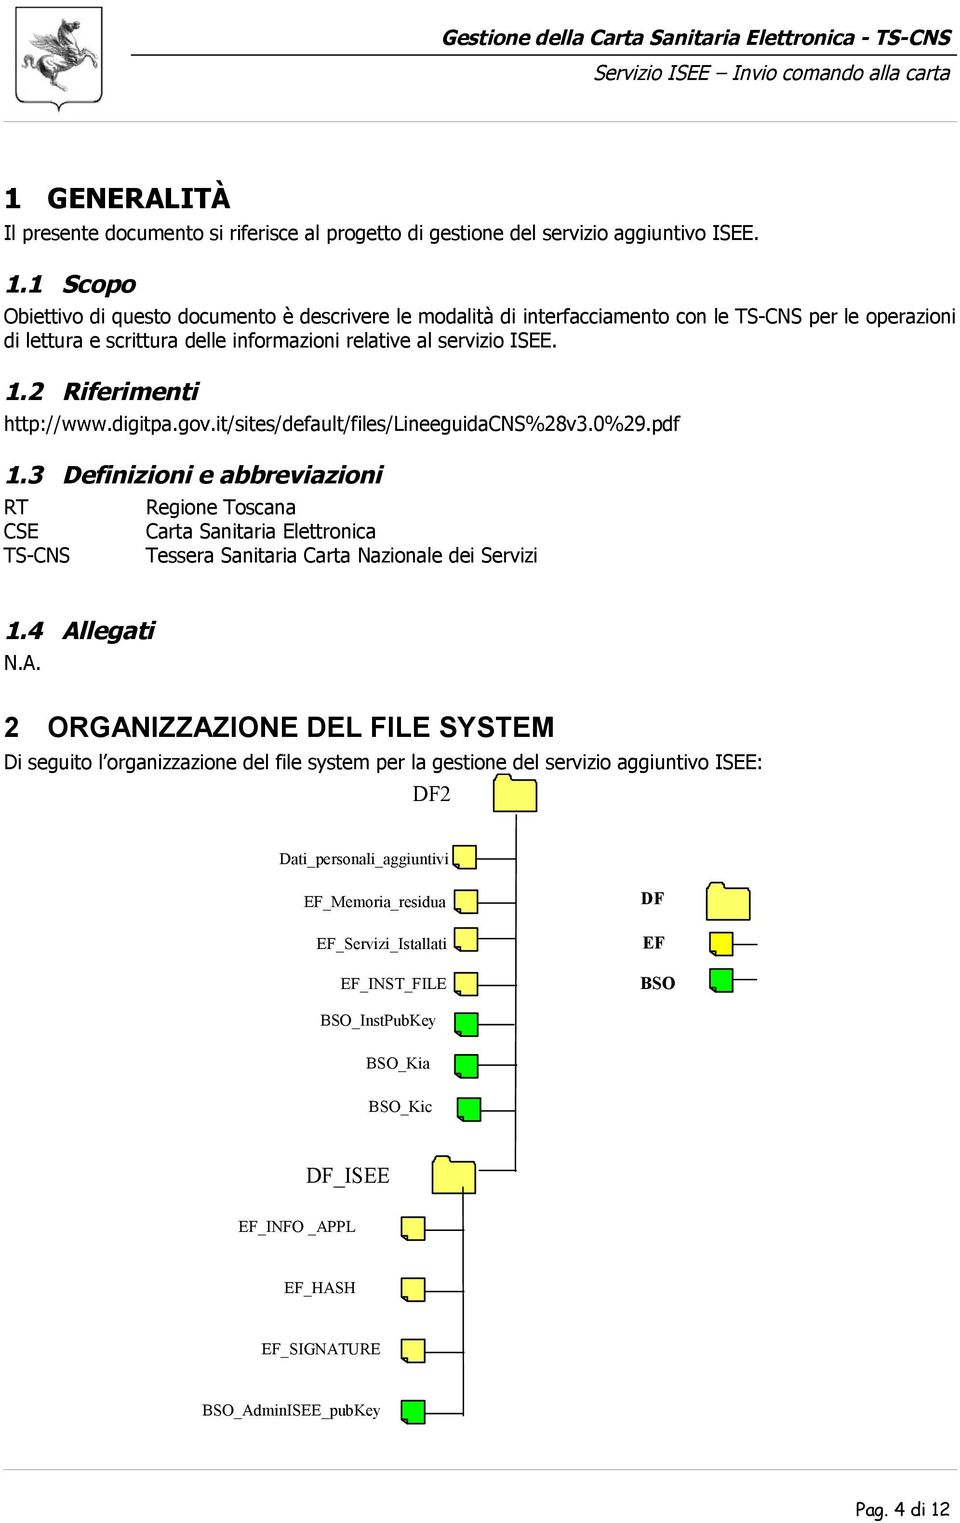 2 Riferimenti http://www.digitpa.gov.it/sites/default/files/lineeguidacns%28v3.0%29.pdf 1.